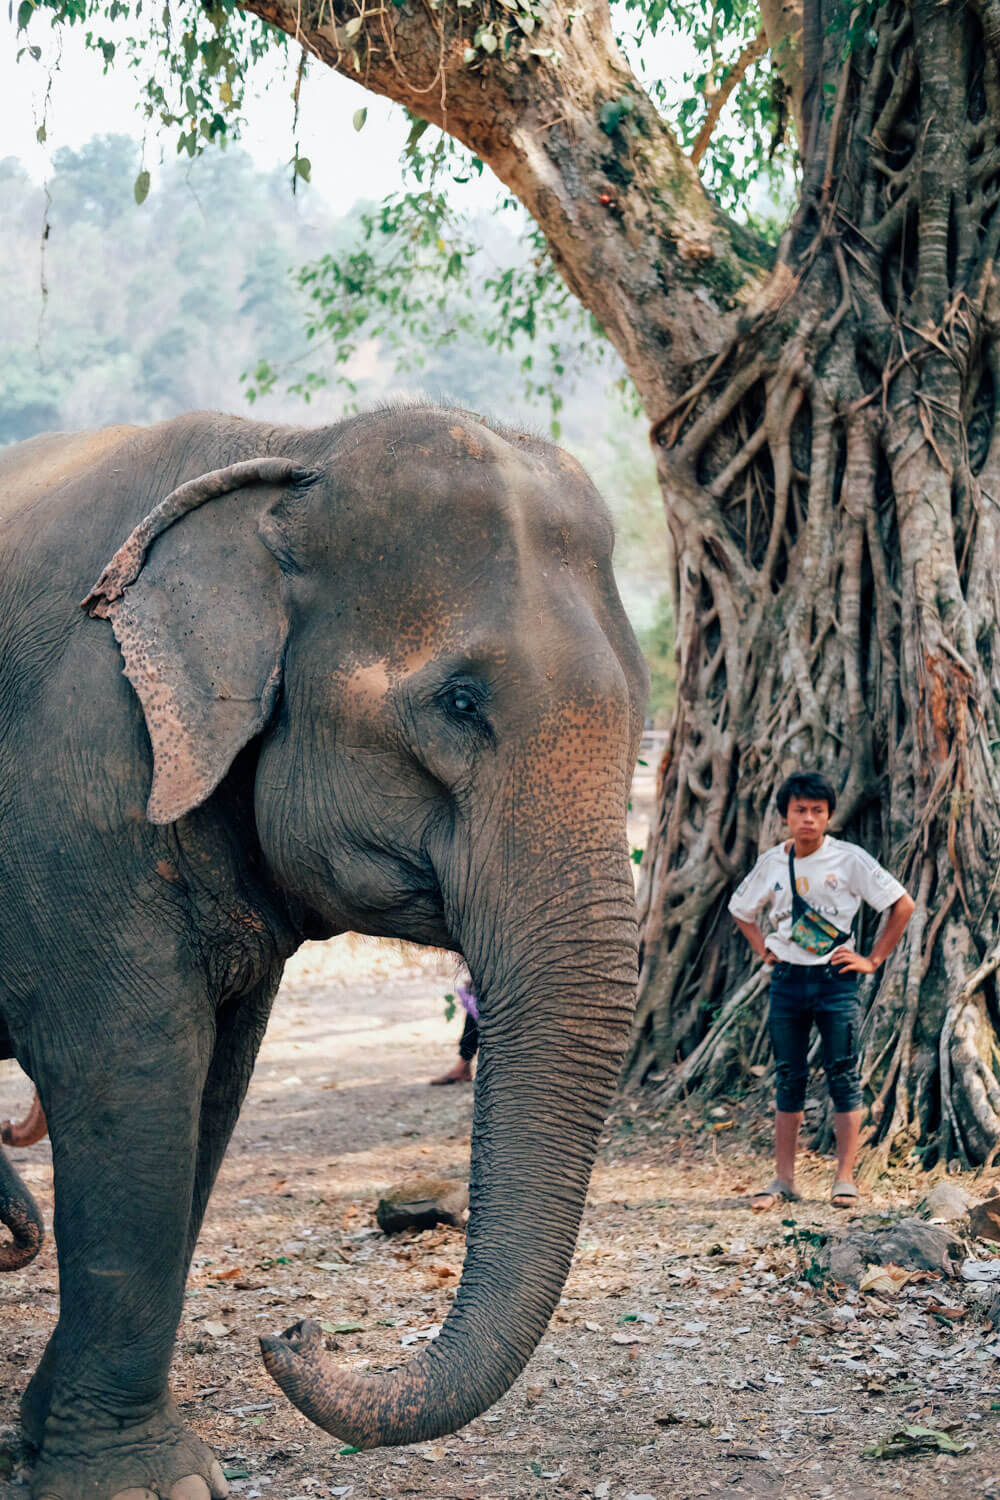 """Elephant Nature Park, Chiang Mai. Travel photography and guide by © Natasha Lequepeys for """"And Then I Met Yoko"""". #thailand #travelguide #travelphotography #animalphotography #travelitinerary #fujifilm"""